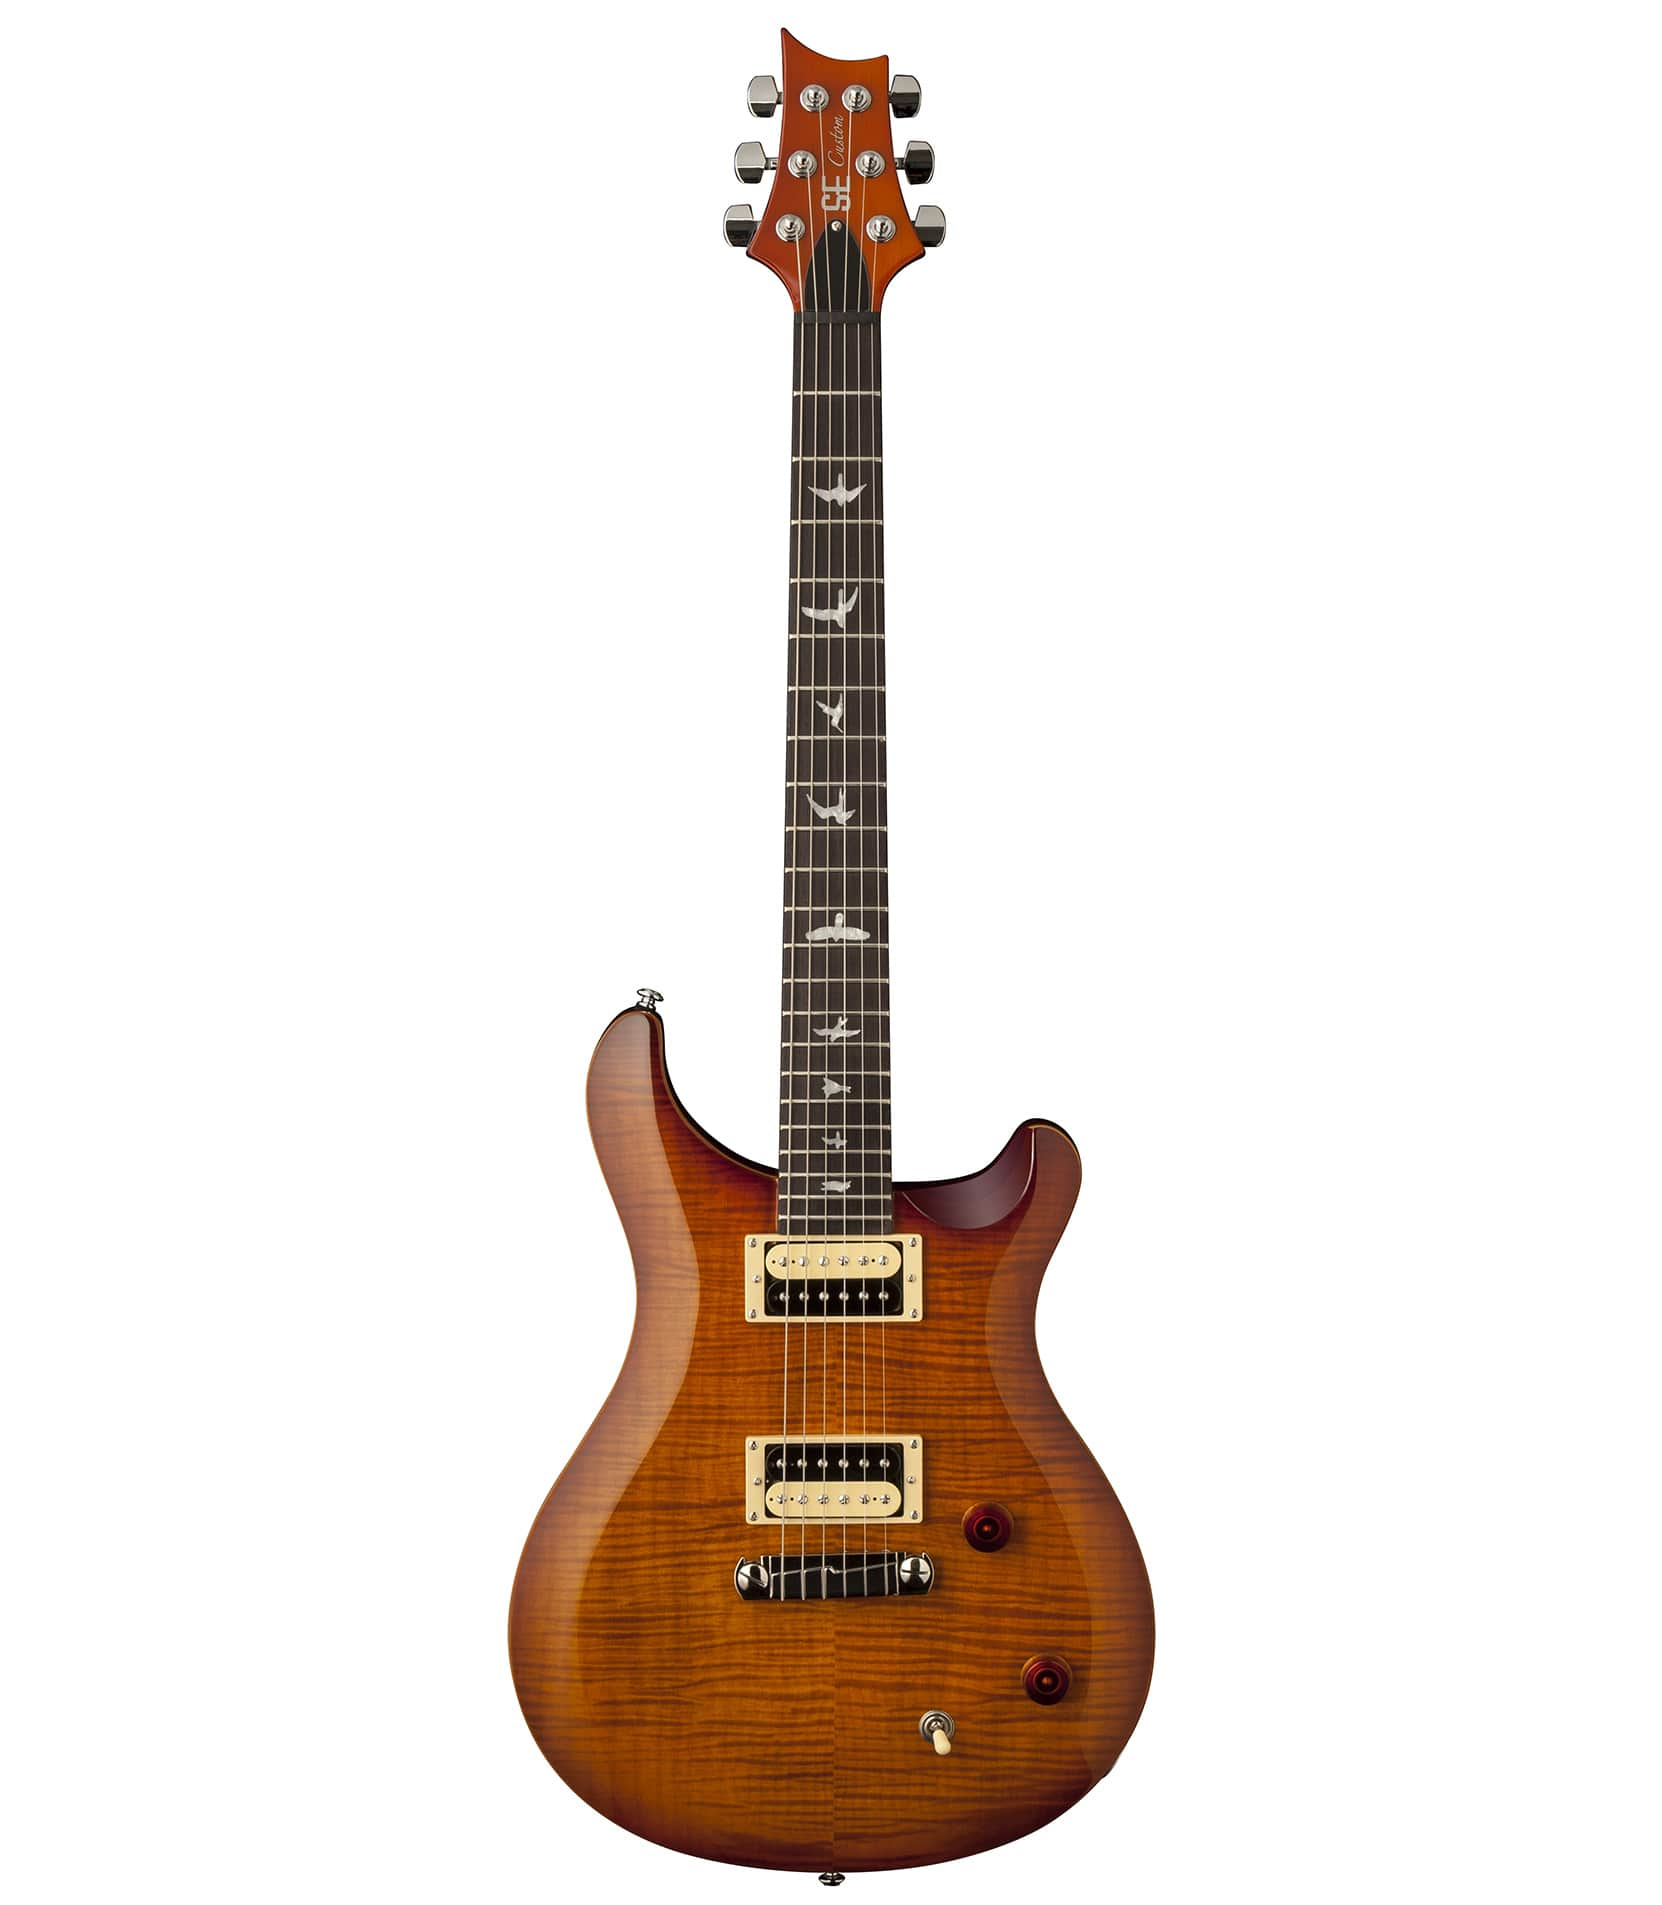 Buy prs SE Custom 22 Guitar Vintage Sunburst Finish Melody House